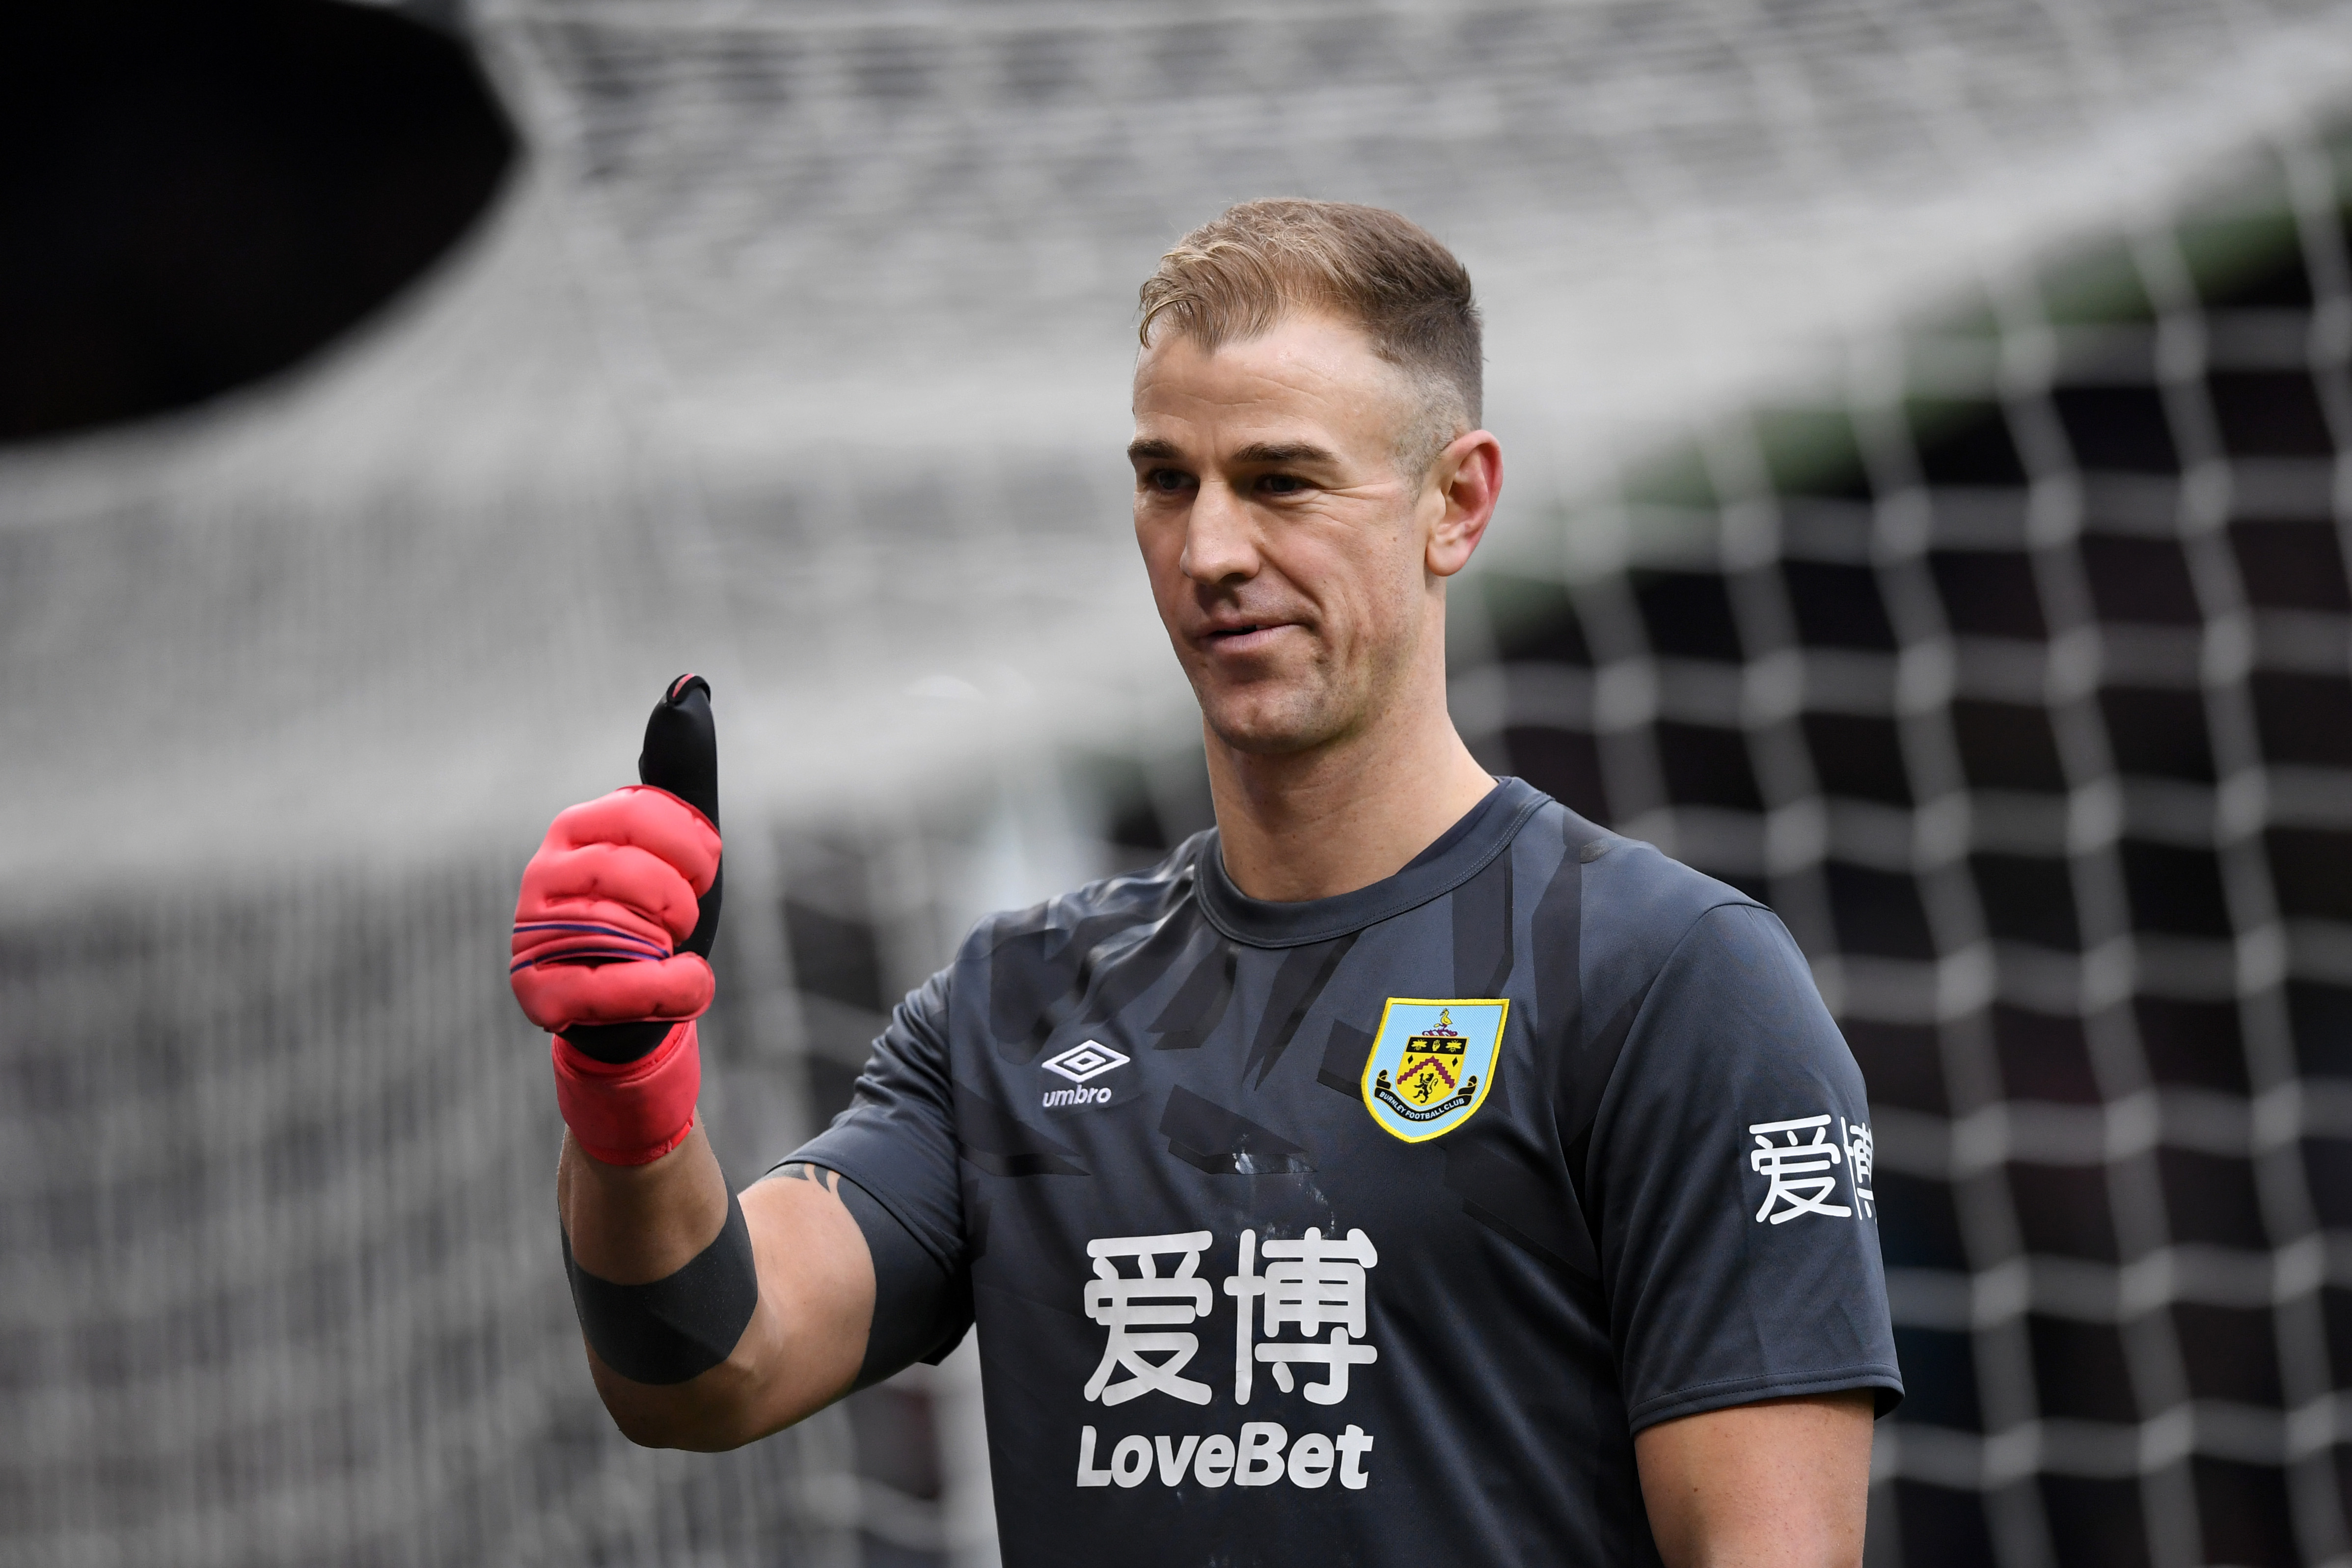 Celtic Have Made Contact For Joe Hart - Hart reacts during a match